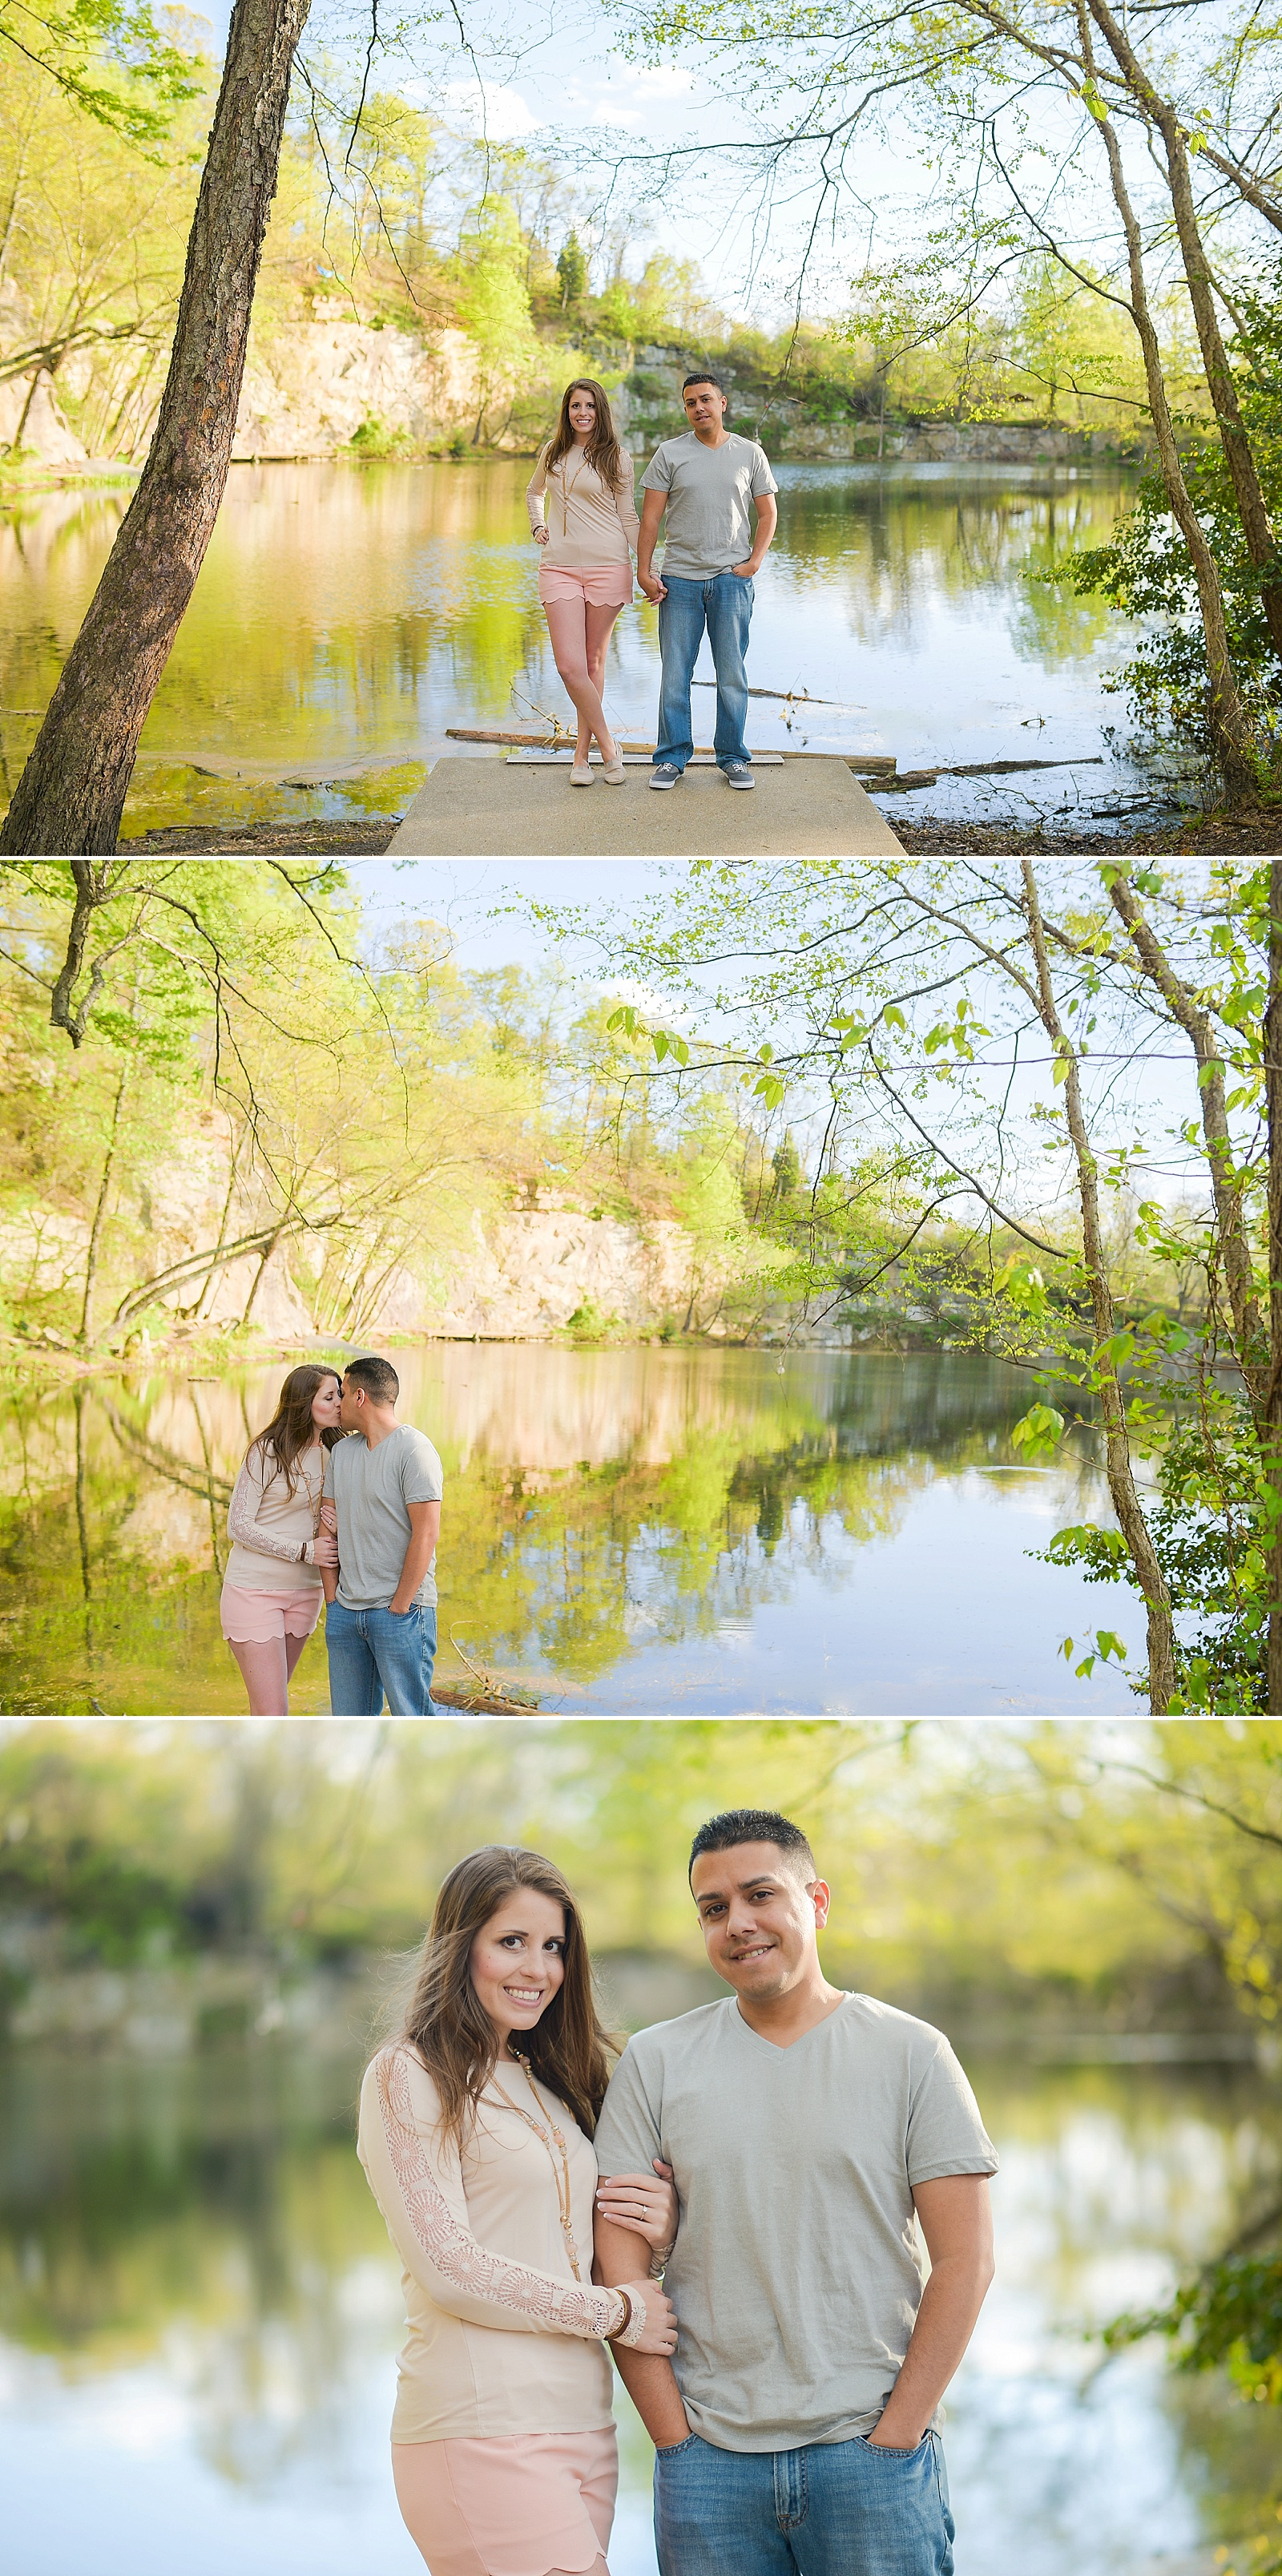 belle-isle-engagement-session-rva-richmond_0002.jpg